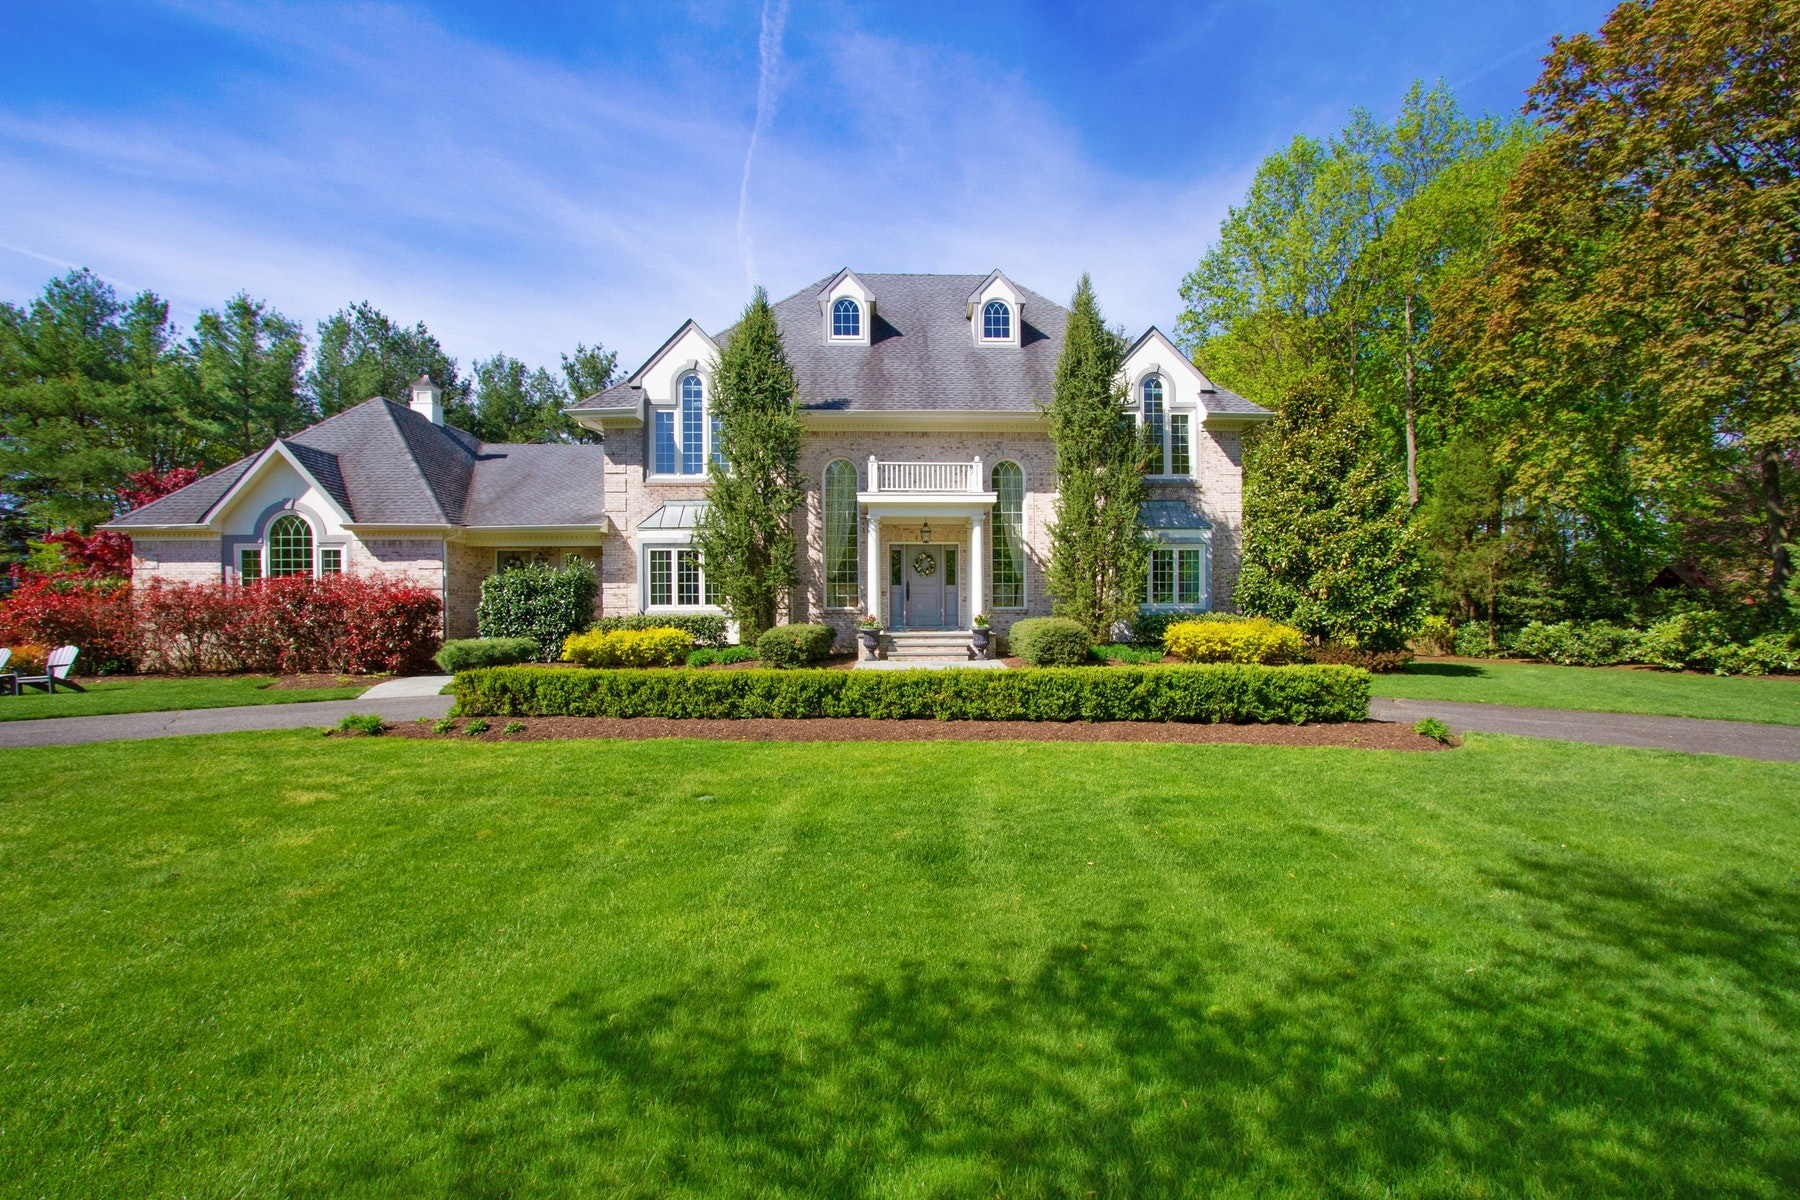 Single Family Home for Sale at Little Silver, New Jersey 07739 United States